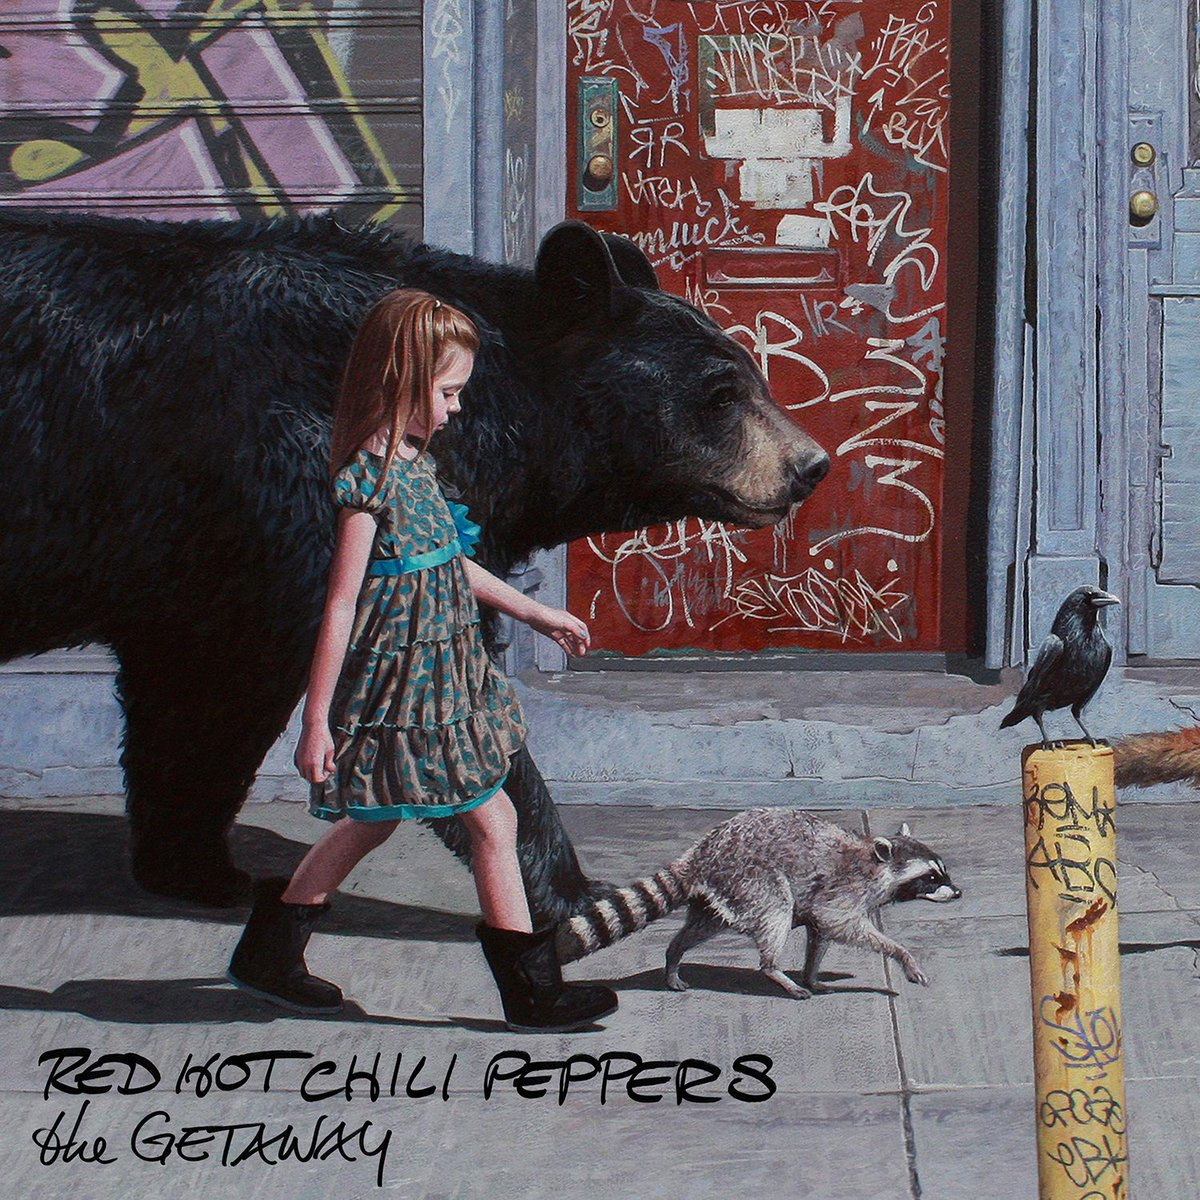 #RedHotChiliPeppers